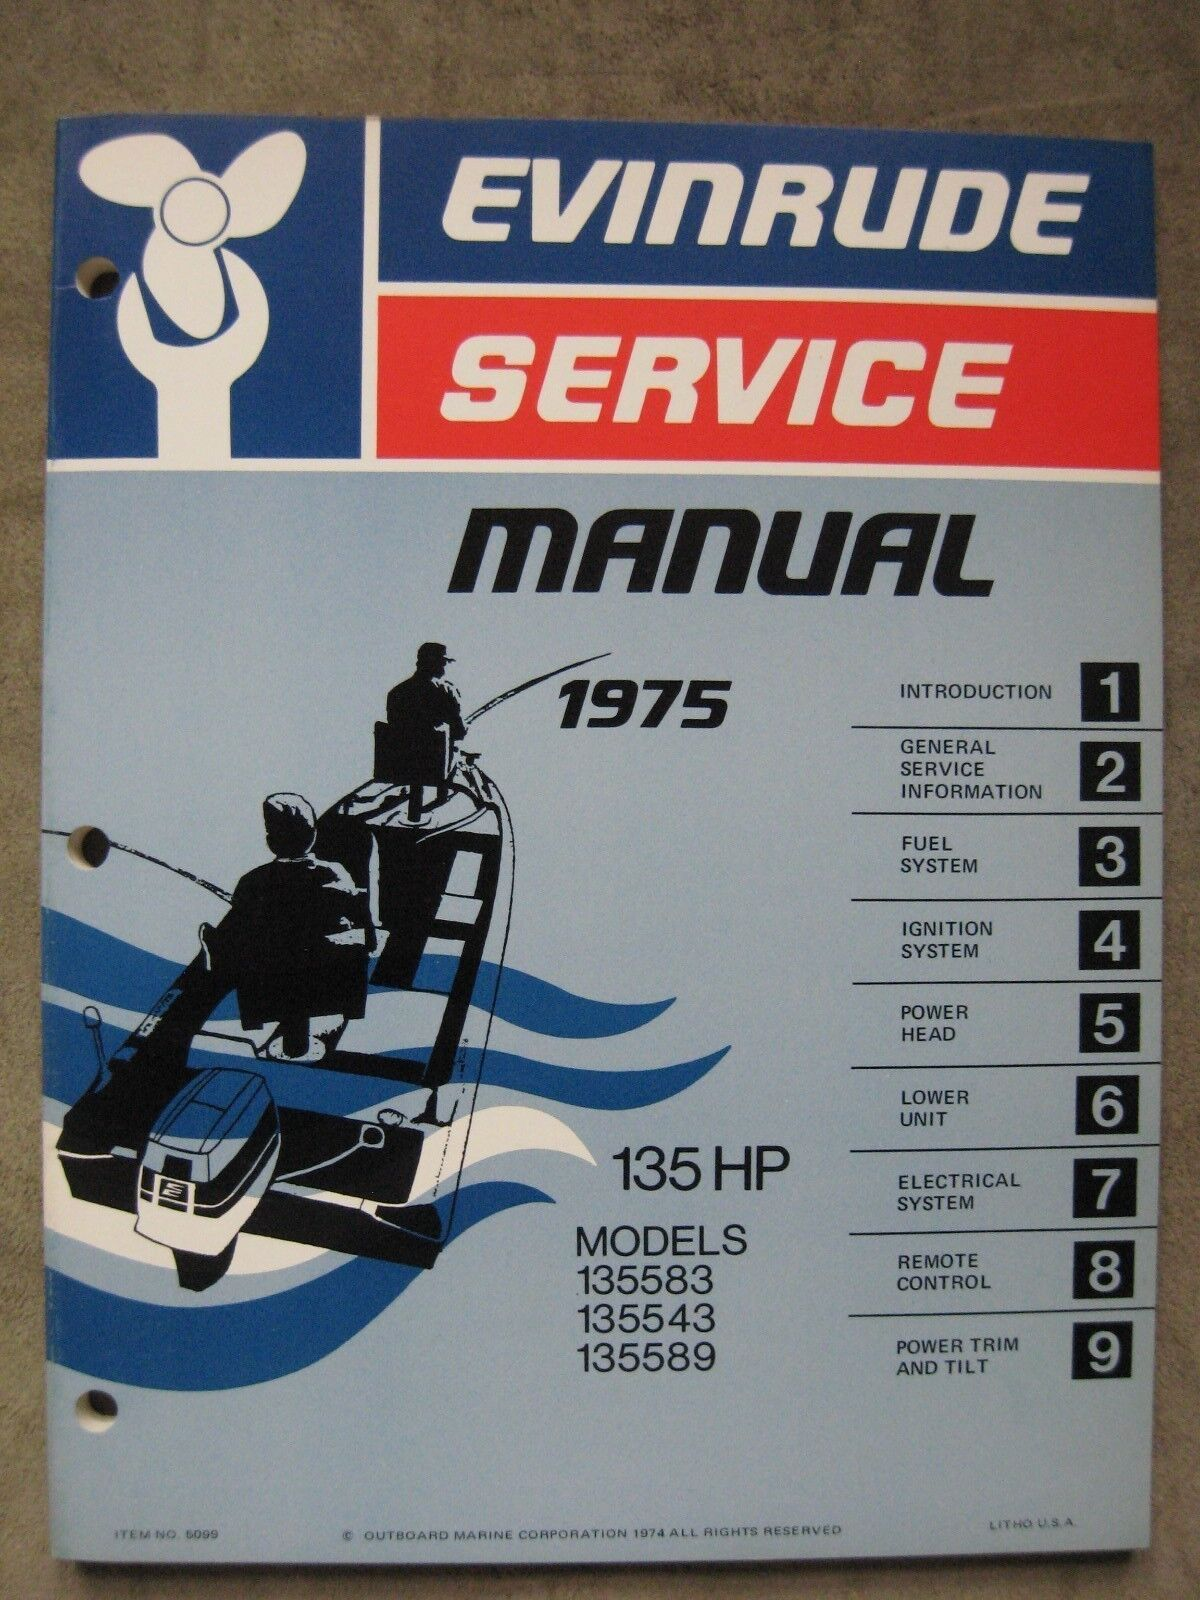 1976 Evinrude 135 HP Outboard Motor Service Repair Manual 135583 135543  135589 1 of 1Only 1 available ...